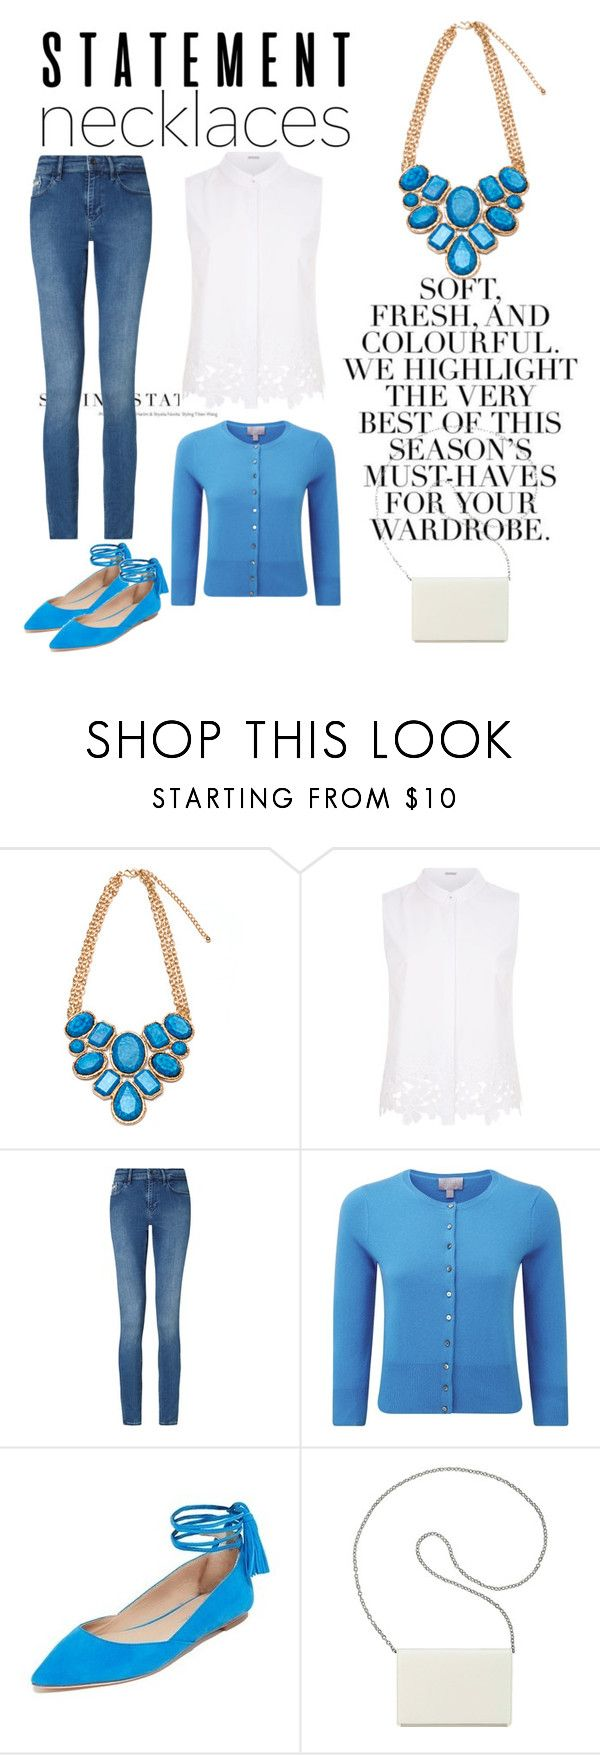 """""""Blue Statement Necklace"""" by lauralion88 ❤ liked on Polyvore featuring Folio, Elie Tahari, Calvin Klein, Loeffler Randall, Nine West and statementnecklaces"""